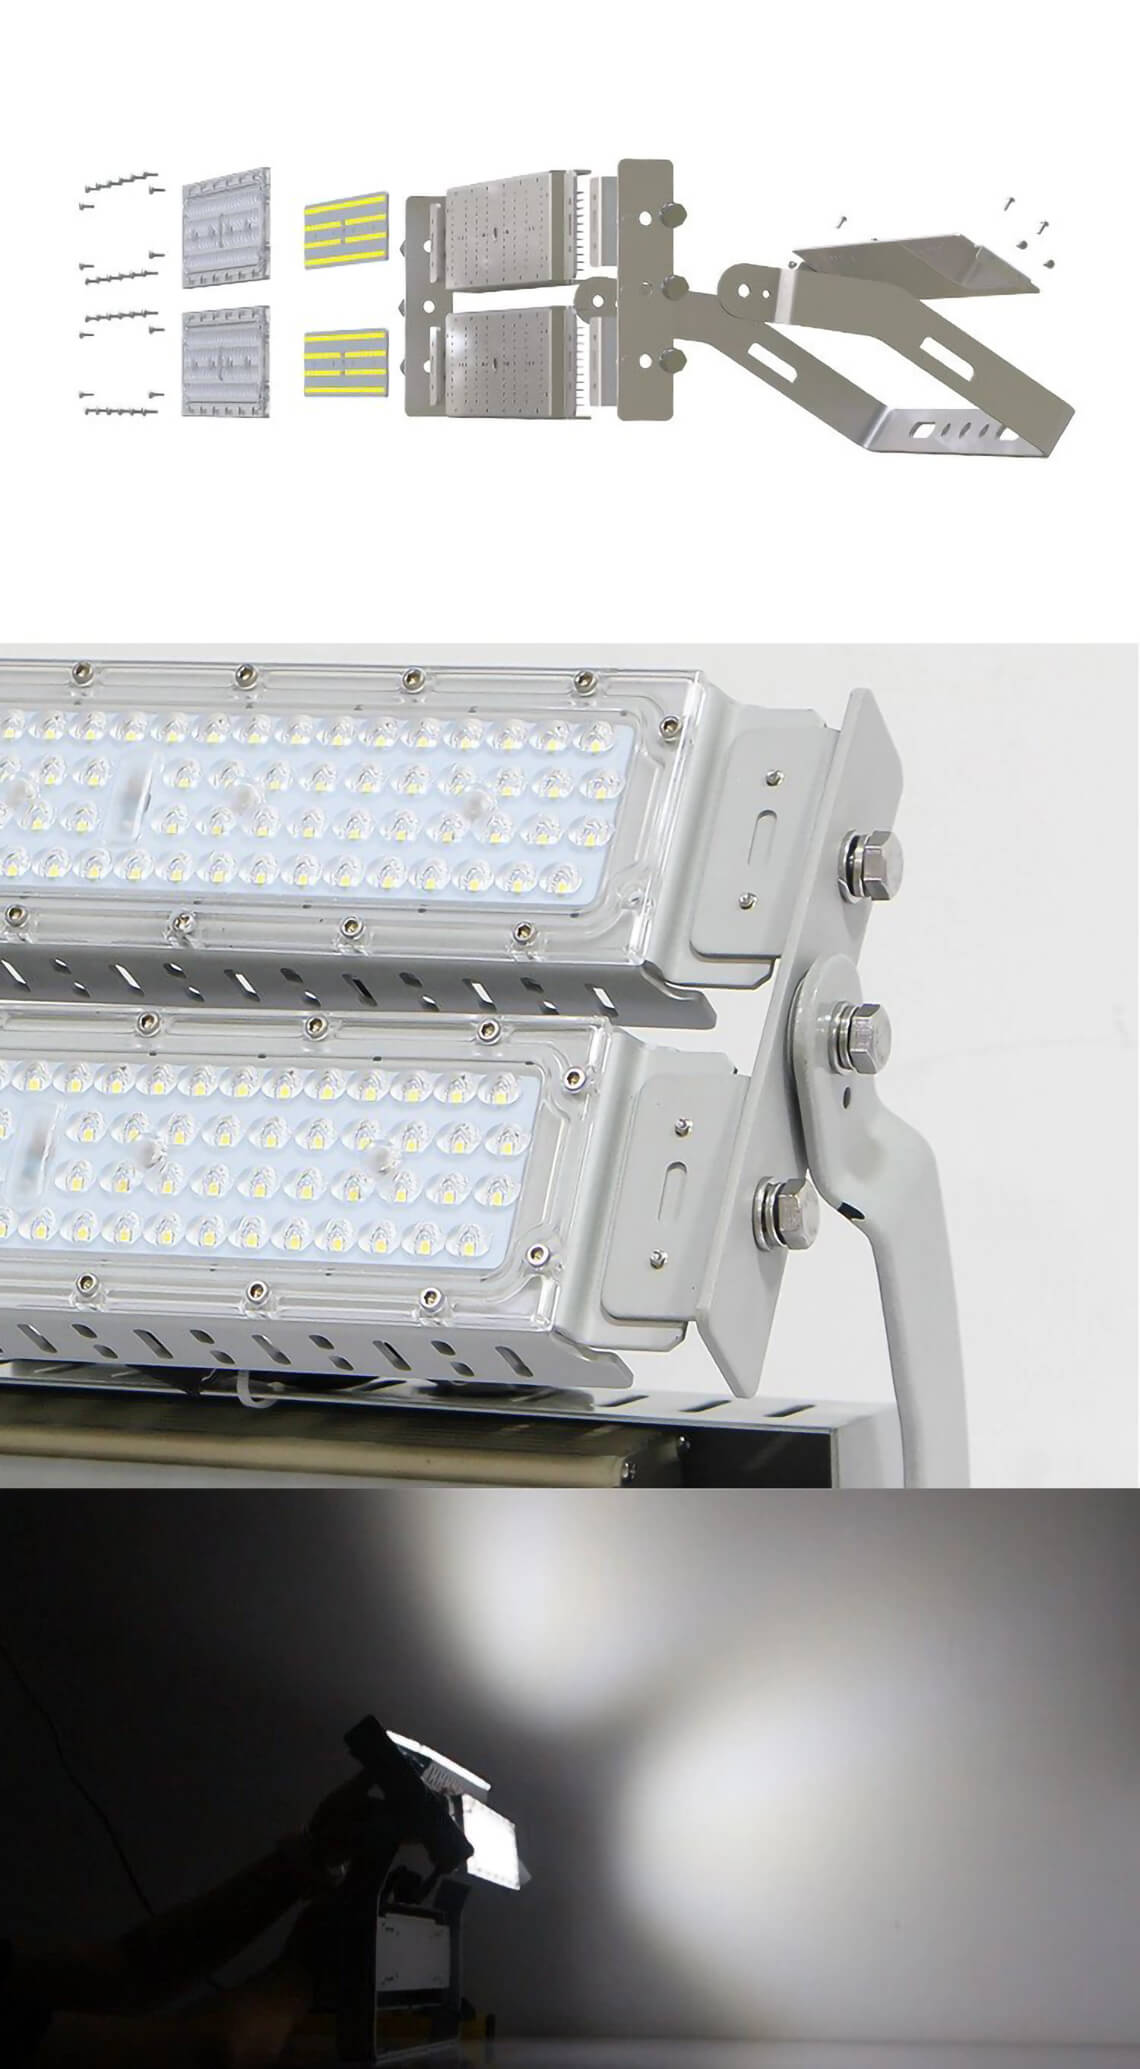 m series flood light-detail-8